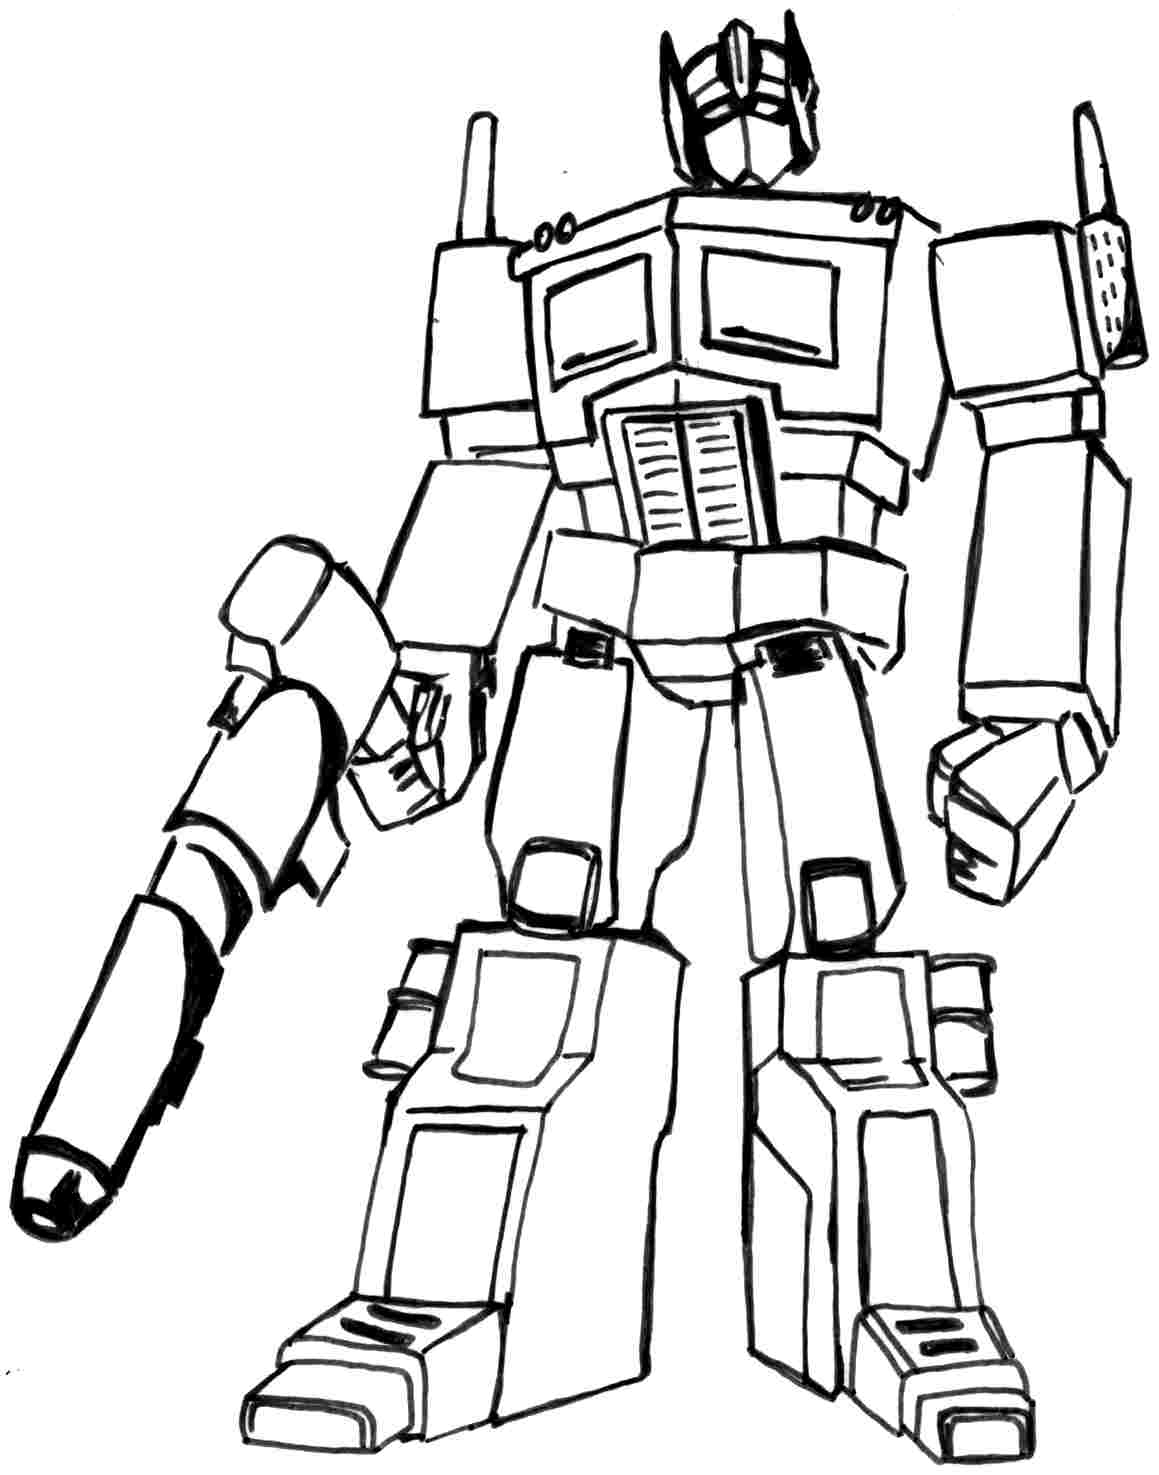 coloring pages transformers free printable coloring pages cool coloring pages transformers pages coloring